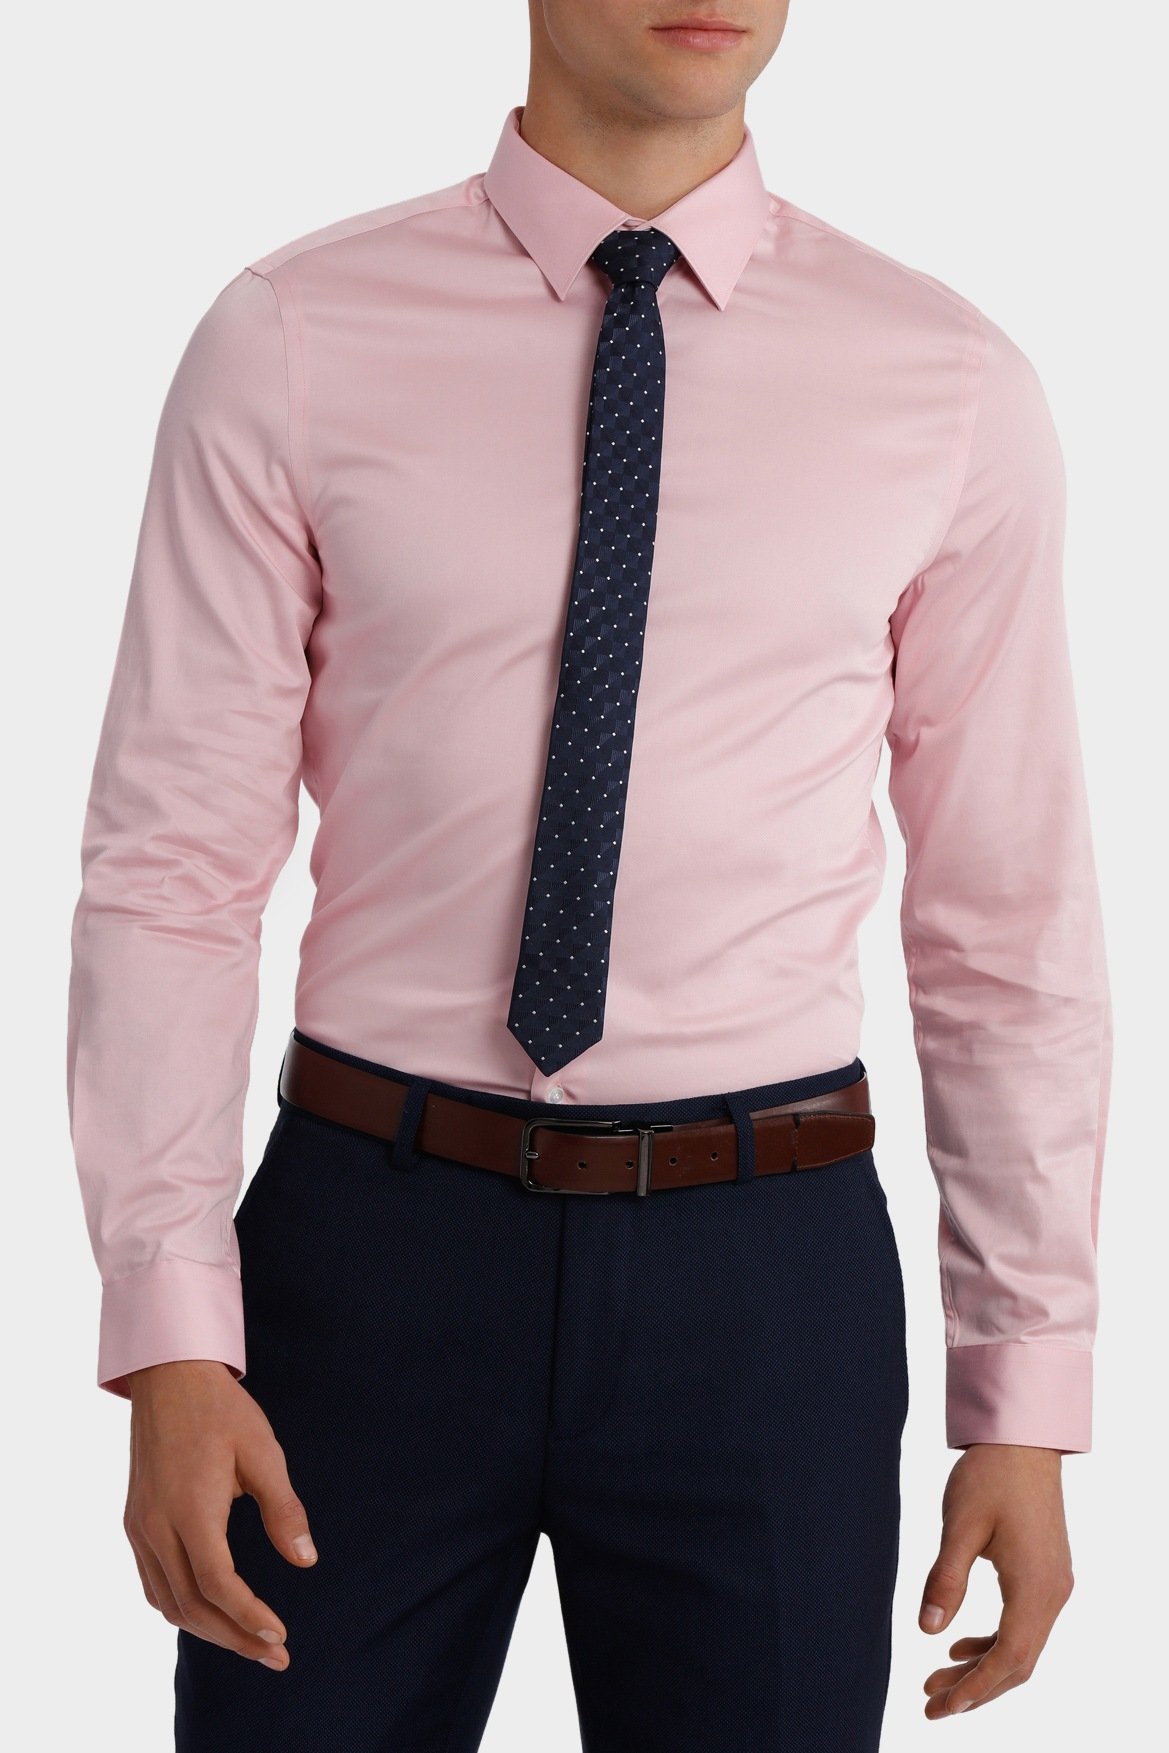 NEW Blaq Slim Ultra Slim Stretch Business Shirt Pink | eBay